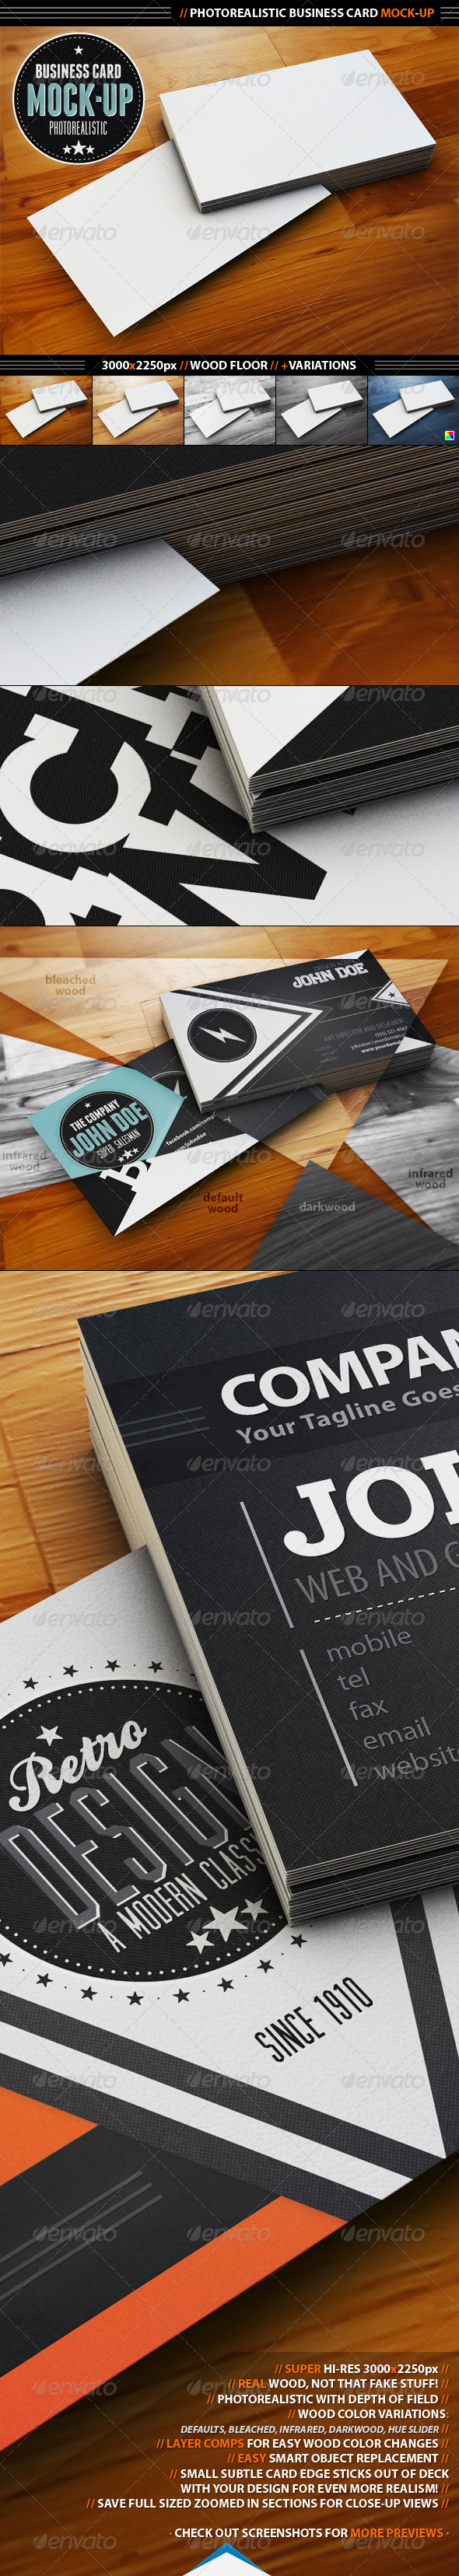 GraphicRiver Photorealistic Business Card Mock-Up 1593084